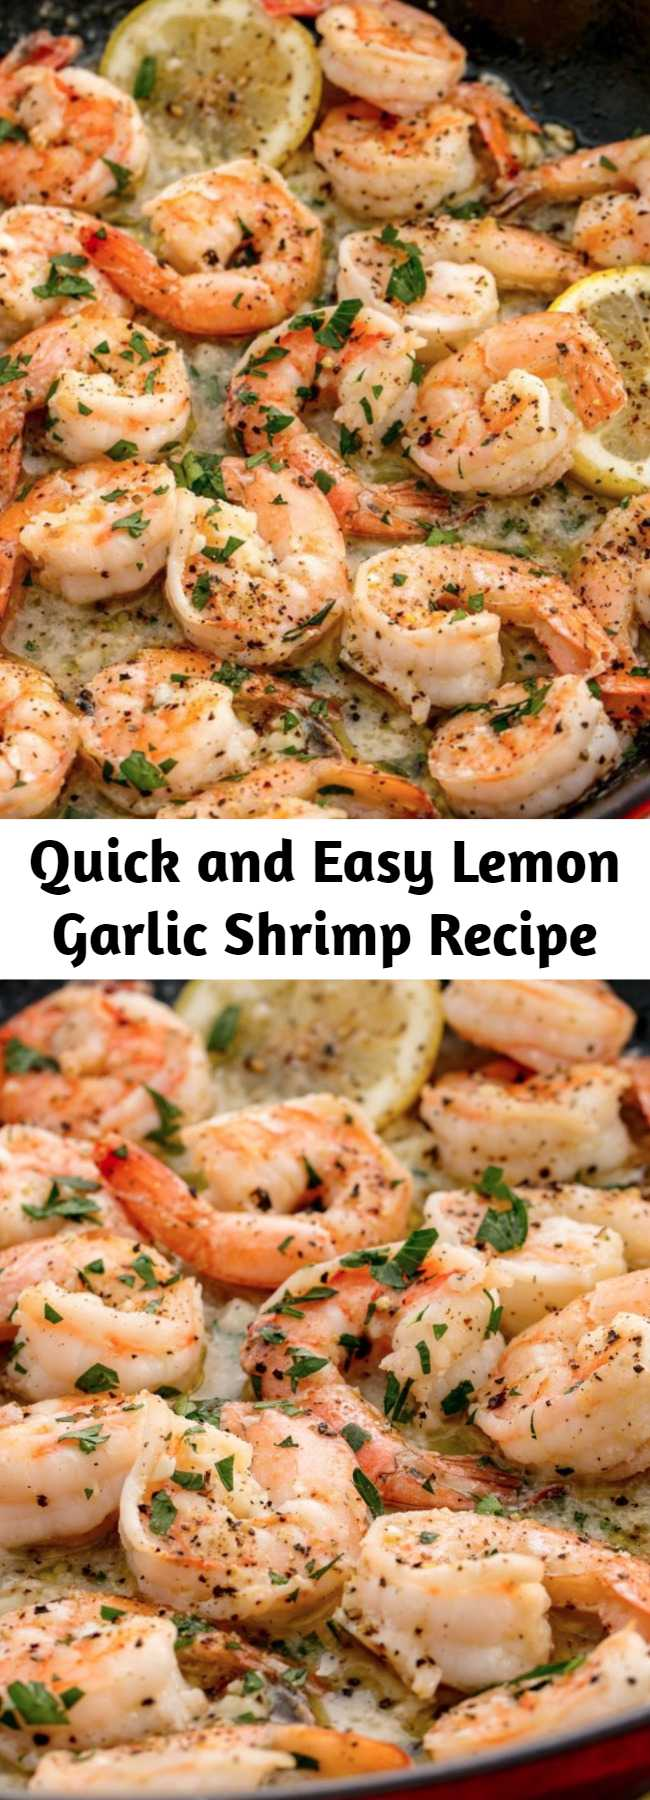 Quick and Easy Lemon Garlic Shrimp Recipe - This Lemon Garlic Shrimp is your dinner tonight. It's ready in 15 minutes or less, and it will be the fastest meal you make all week.